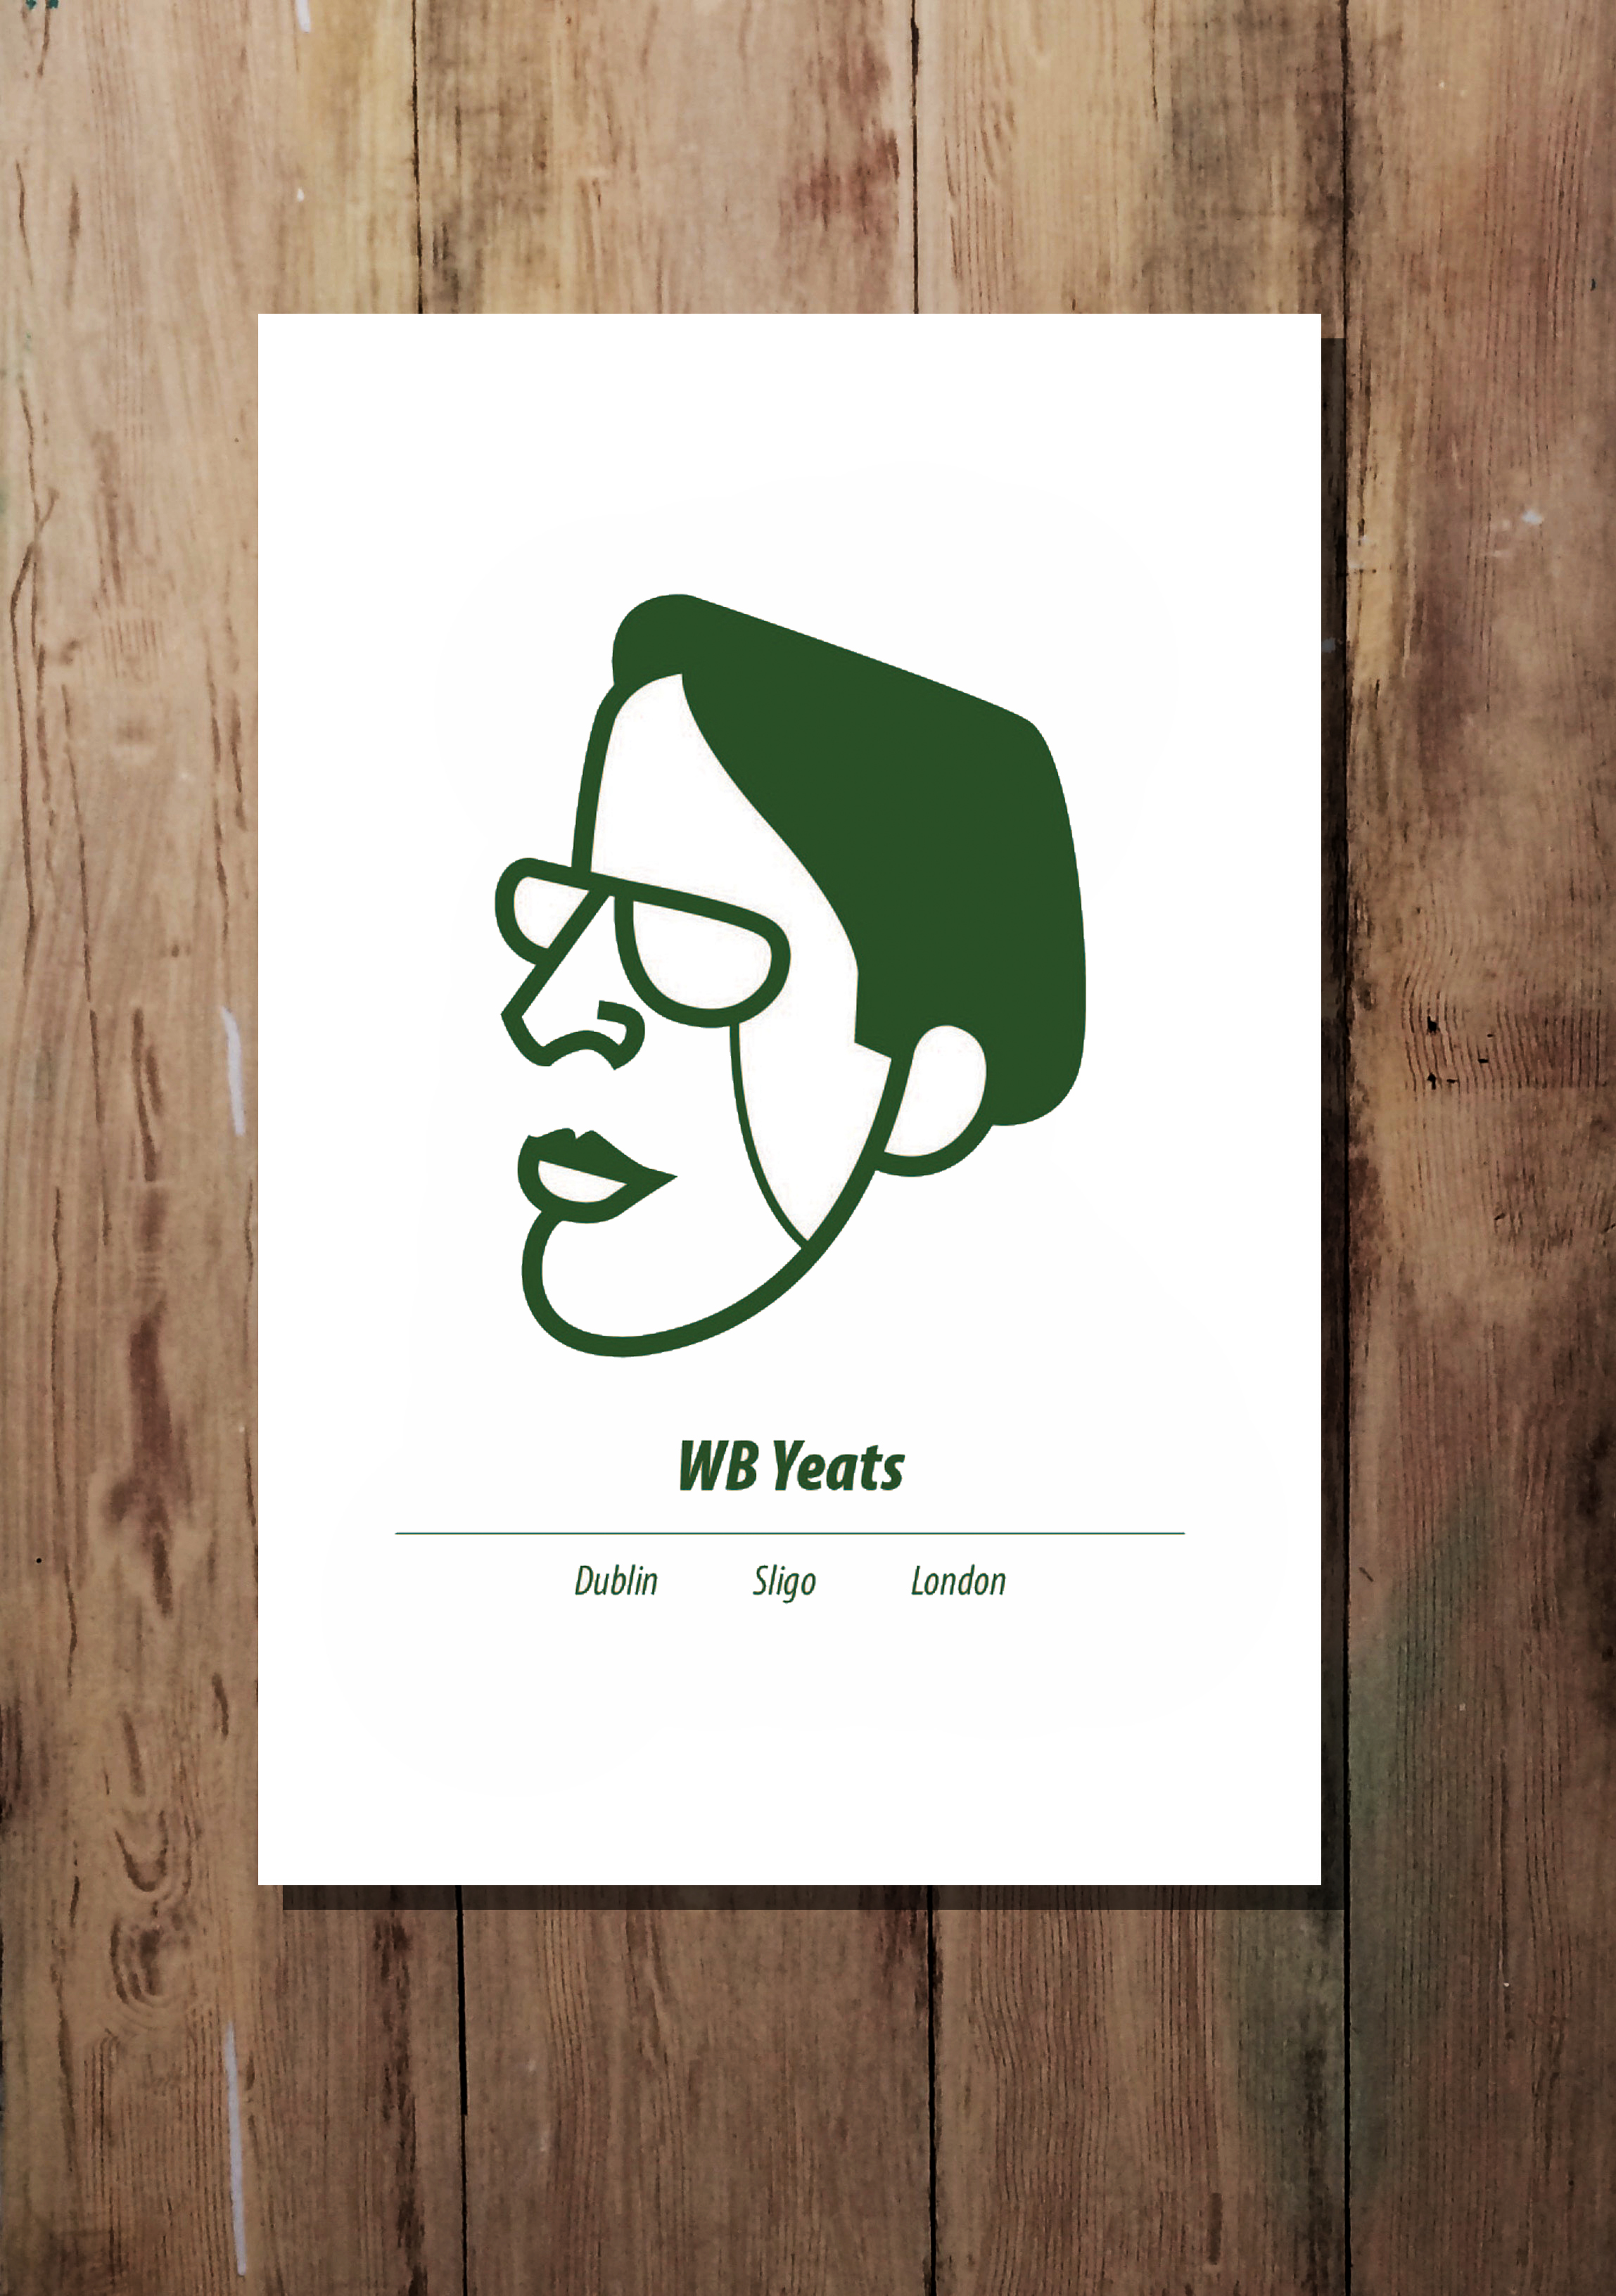 WB Yeats print by At it Again!